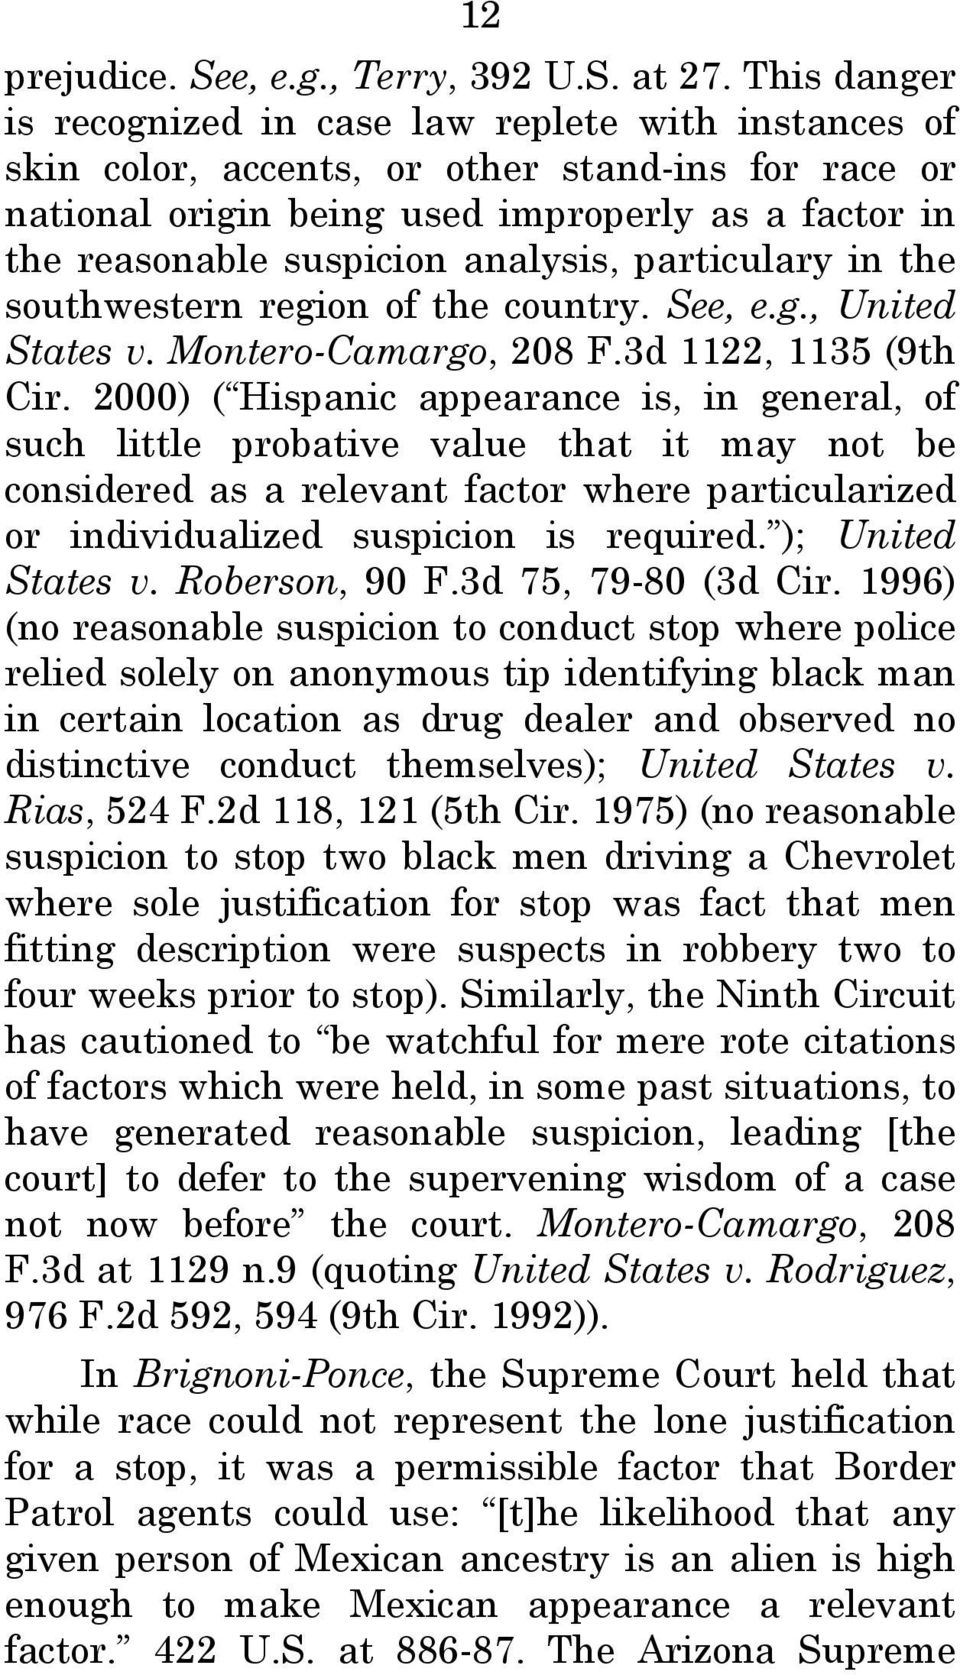 analysis, particulary in the southwestern region of the country. See, e.g., United States v. Montero-Camargo, 208 F.3d 1122, 1135 (9th Cir.